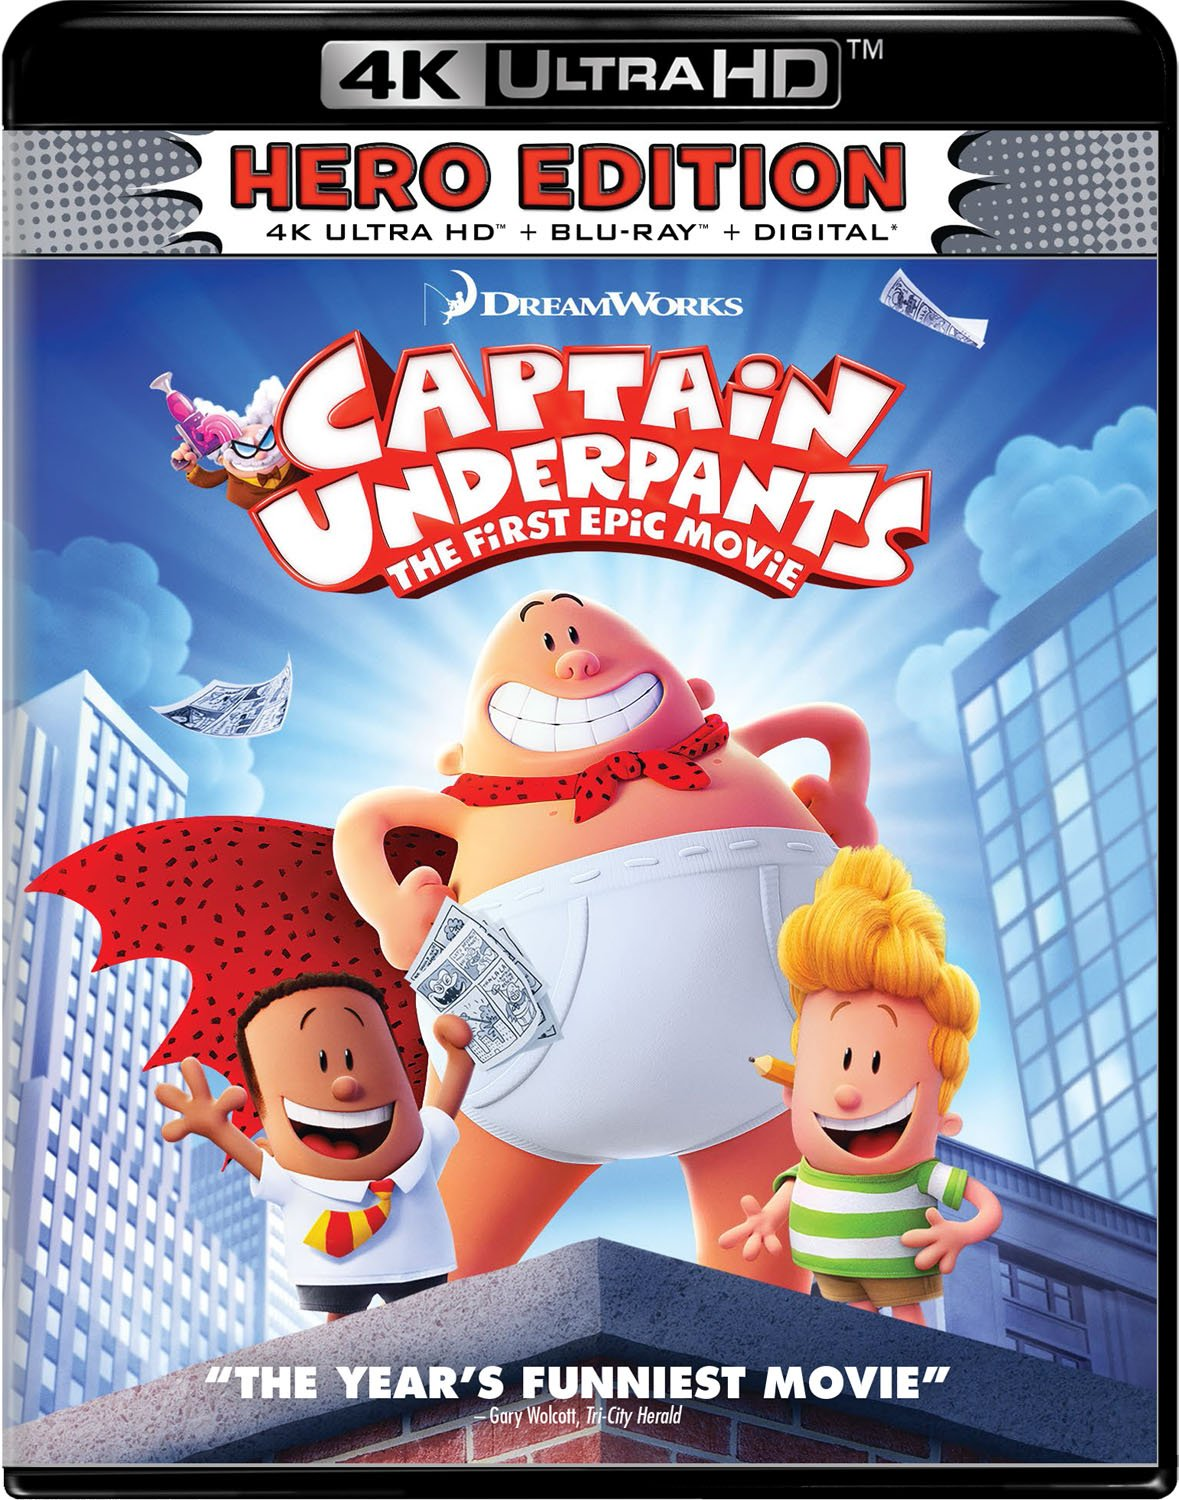 Amazon Com Captain Underpants The First Epic Movie Blu Ray Kevin Hart Ed Helms Nick Kroll Thomas Middleditch Jordan Peele Kristen Schaal David Soren Mireille Soria Mark Swift Nicholas Stoller Movies Tv